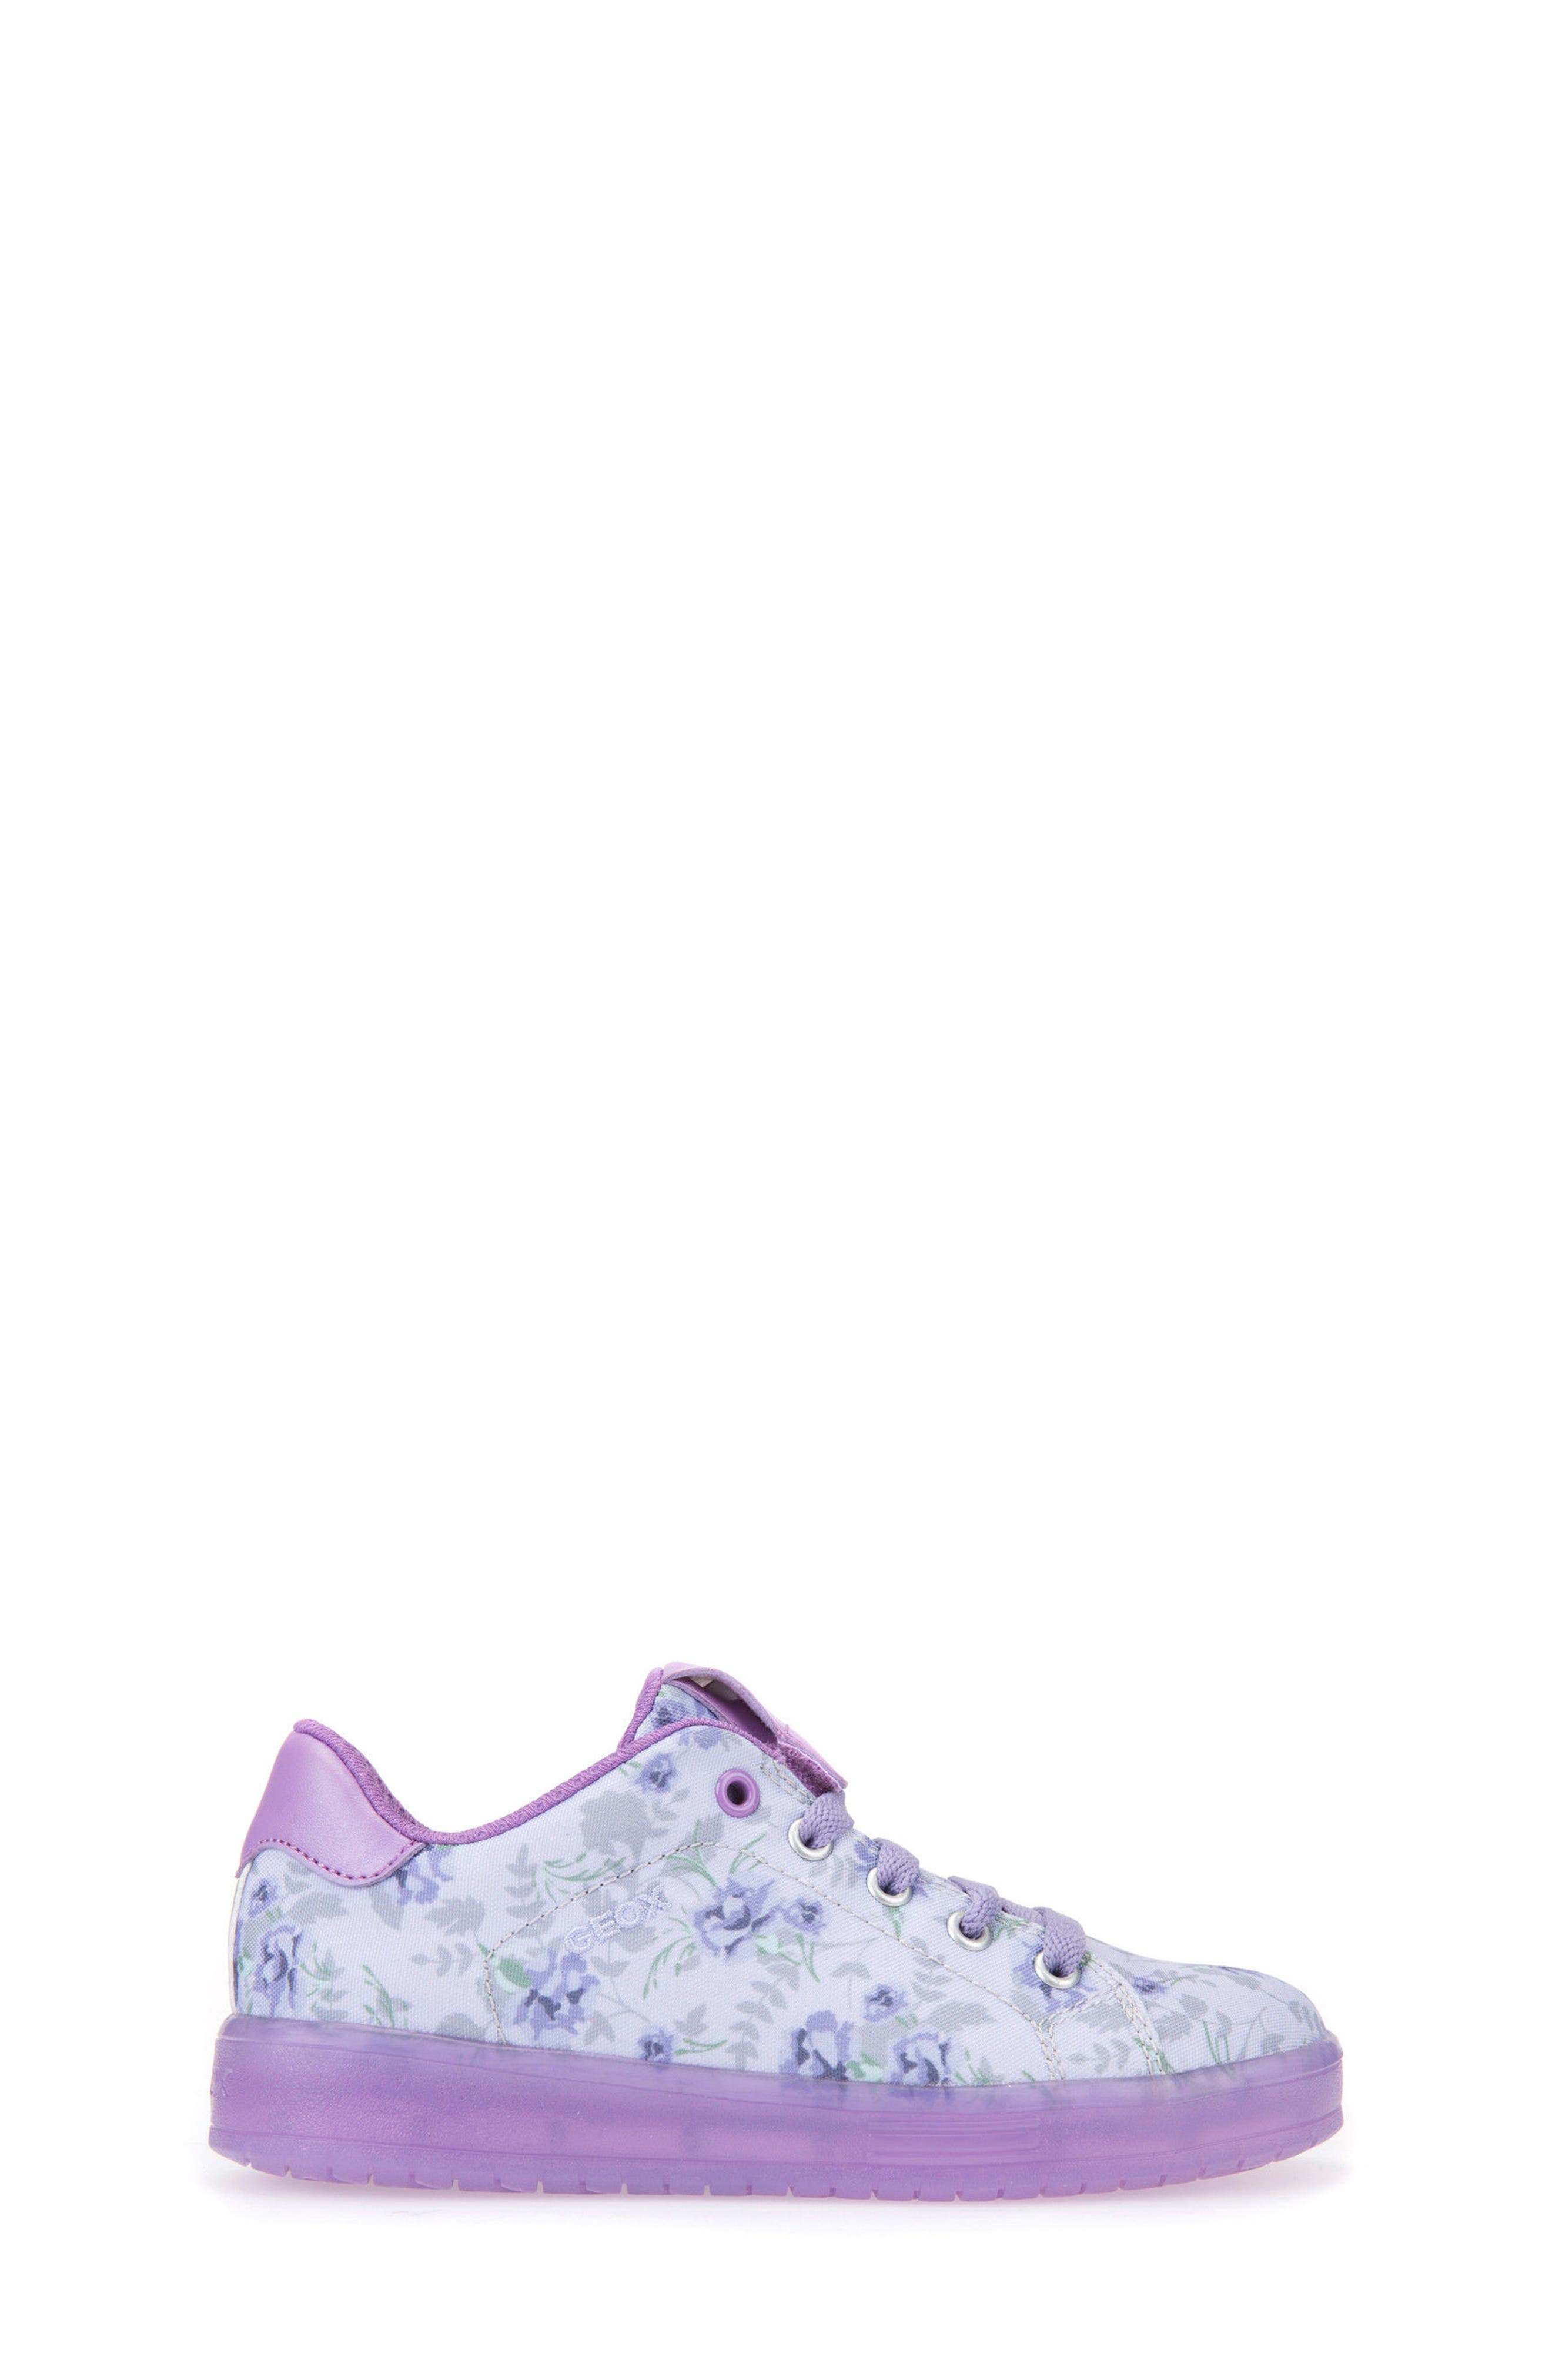 Kommodor Light-Up Sneaker,                             Alternate thumbnail 3, color,                             LIGHT LILAC/ LILAC